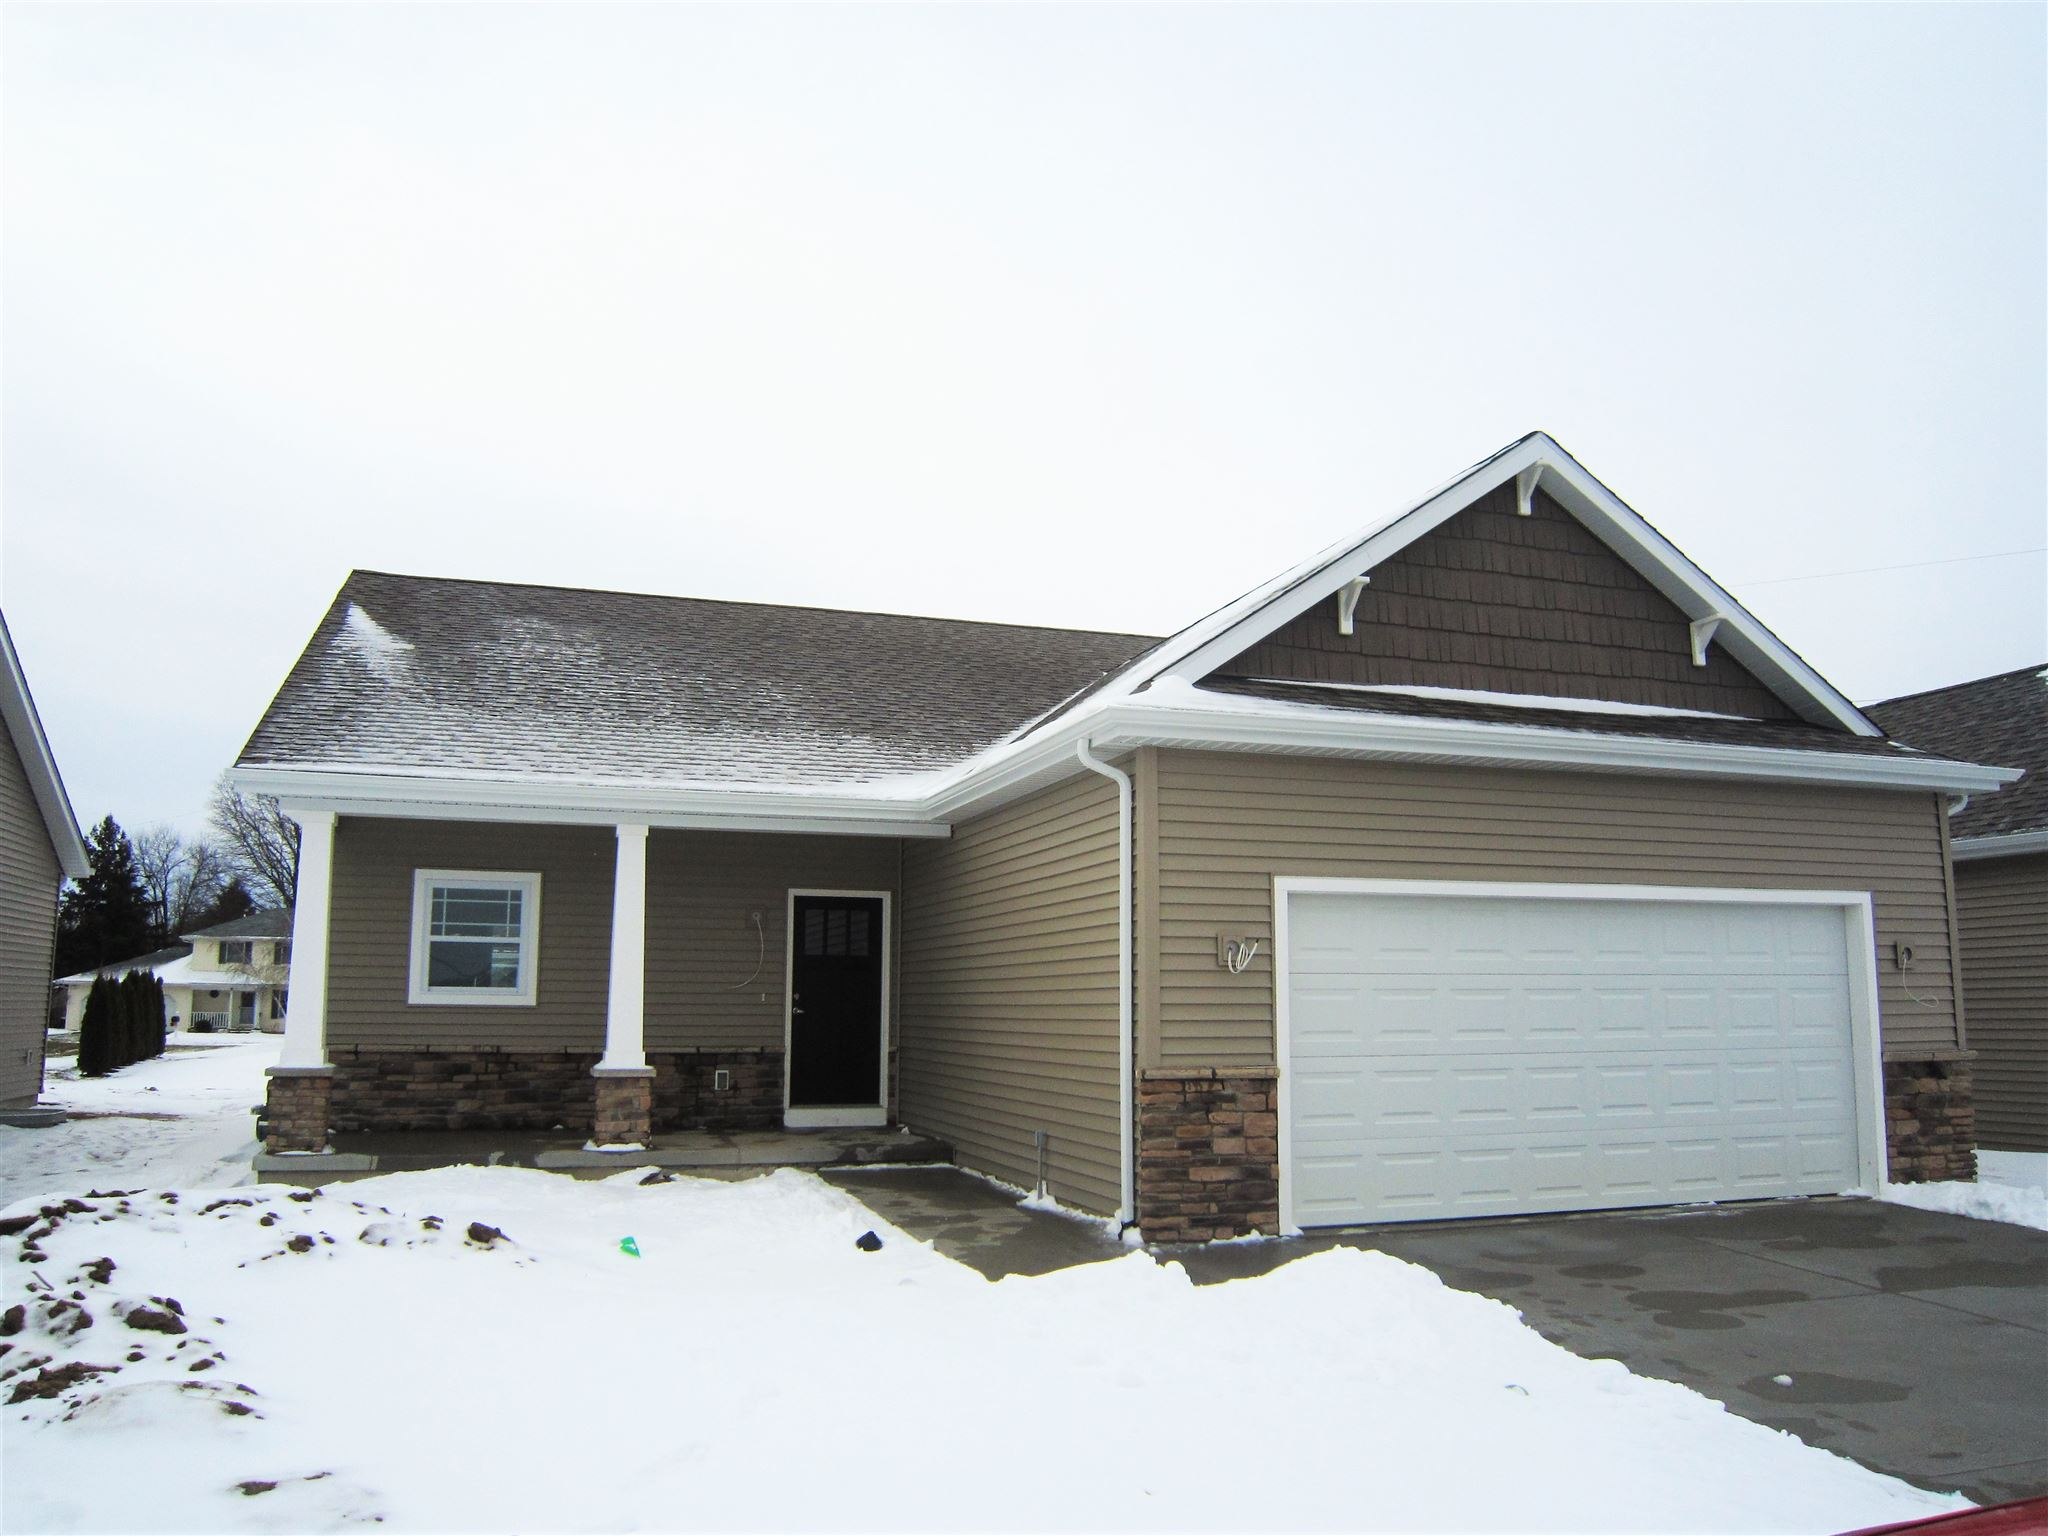 3325 Westborough #62 Mishawaka, IN 46544